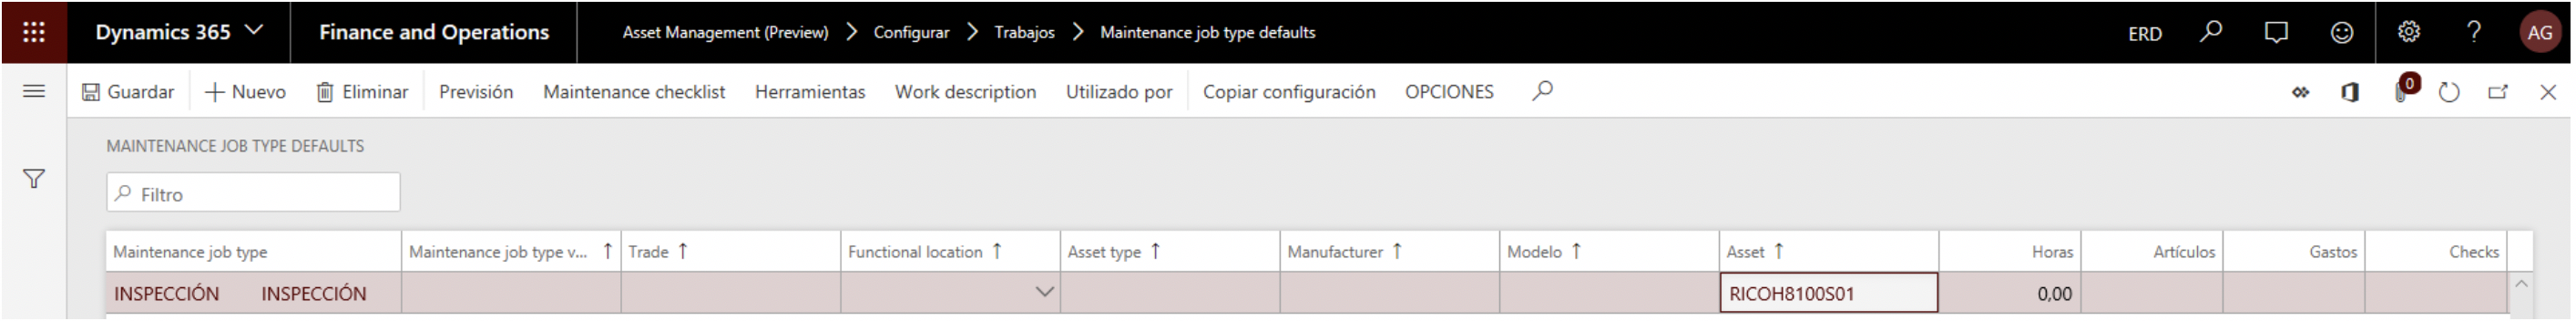 ERD - Dynamics365 Finance Operations - Gestión Activos ERP - 2.9